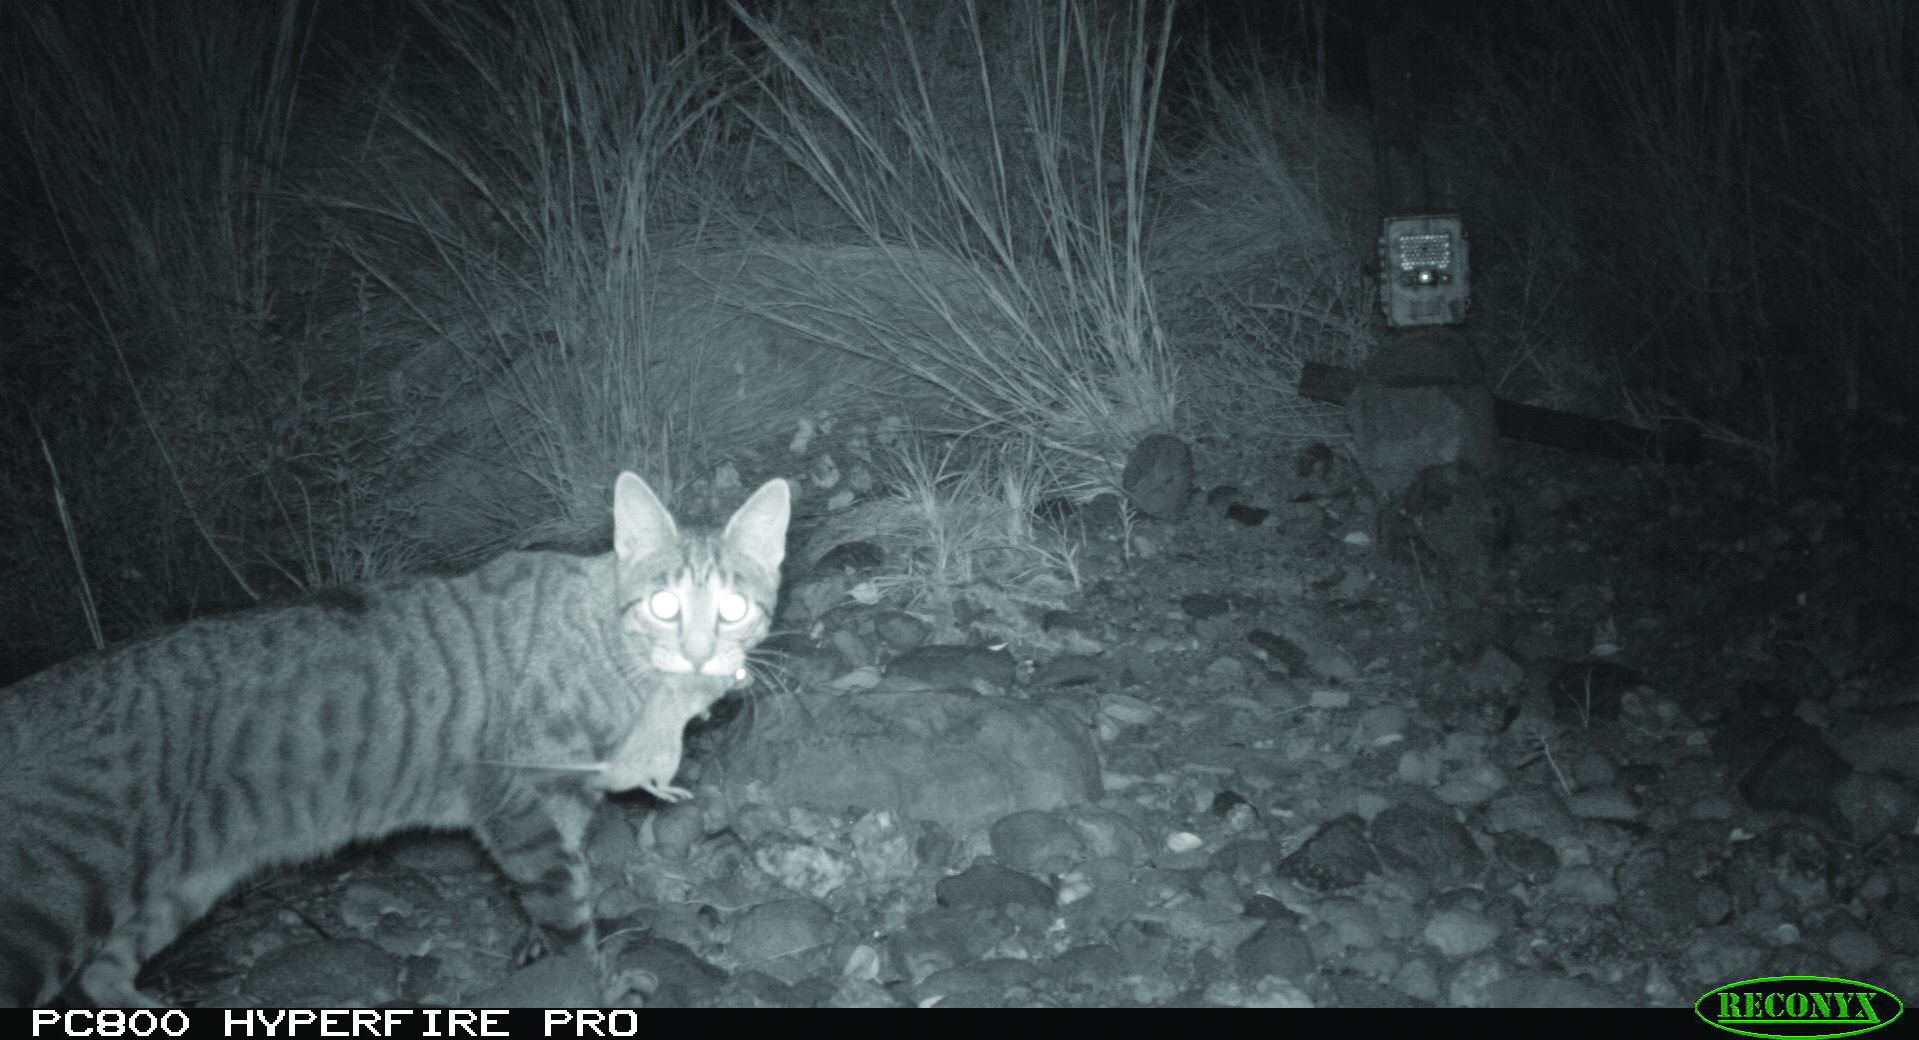 A Camera Trap Captures Feral Cat That Has Killed